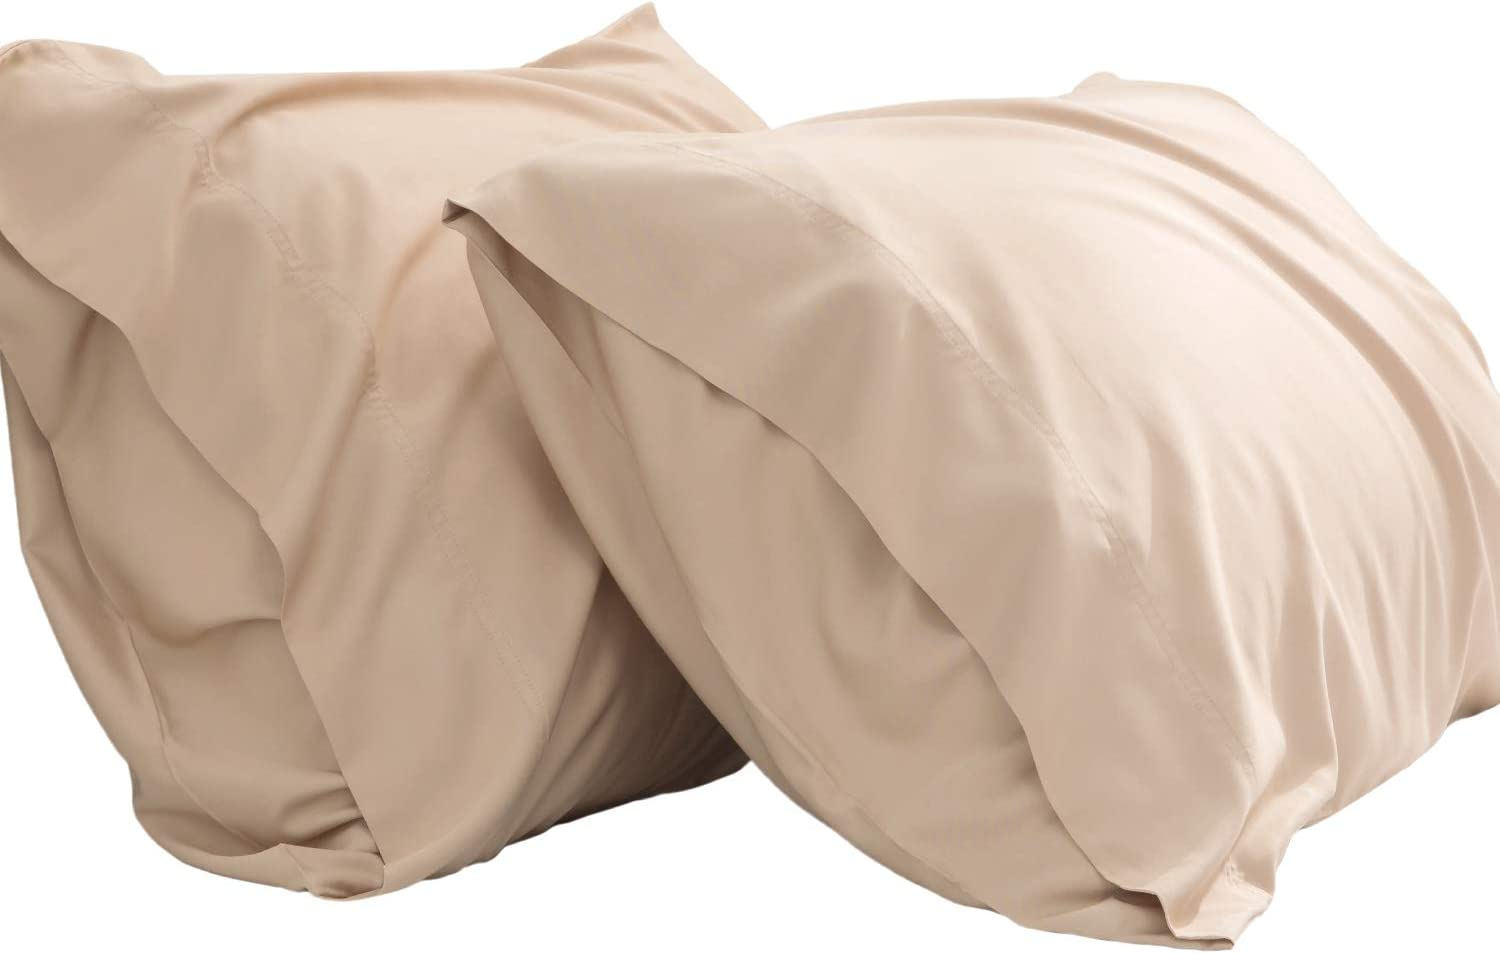 Bedsure Cooling Bamboo Pillowcases Set of 2 - Breathable Cool Ultra Soft Pillow Cases - Viscose from Bamboo - Organic Natural Silky Material, Moisture Wicking(Tapue, Queen Size 20x30 inches)